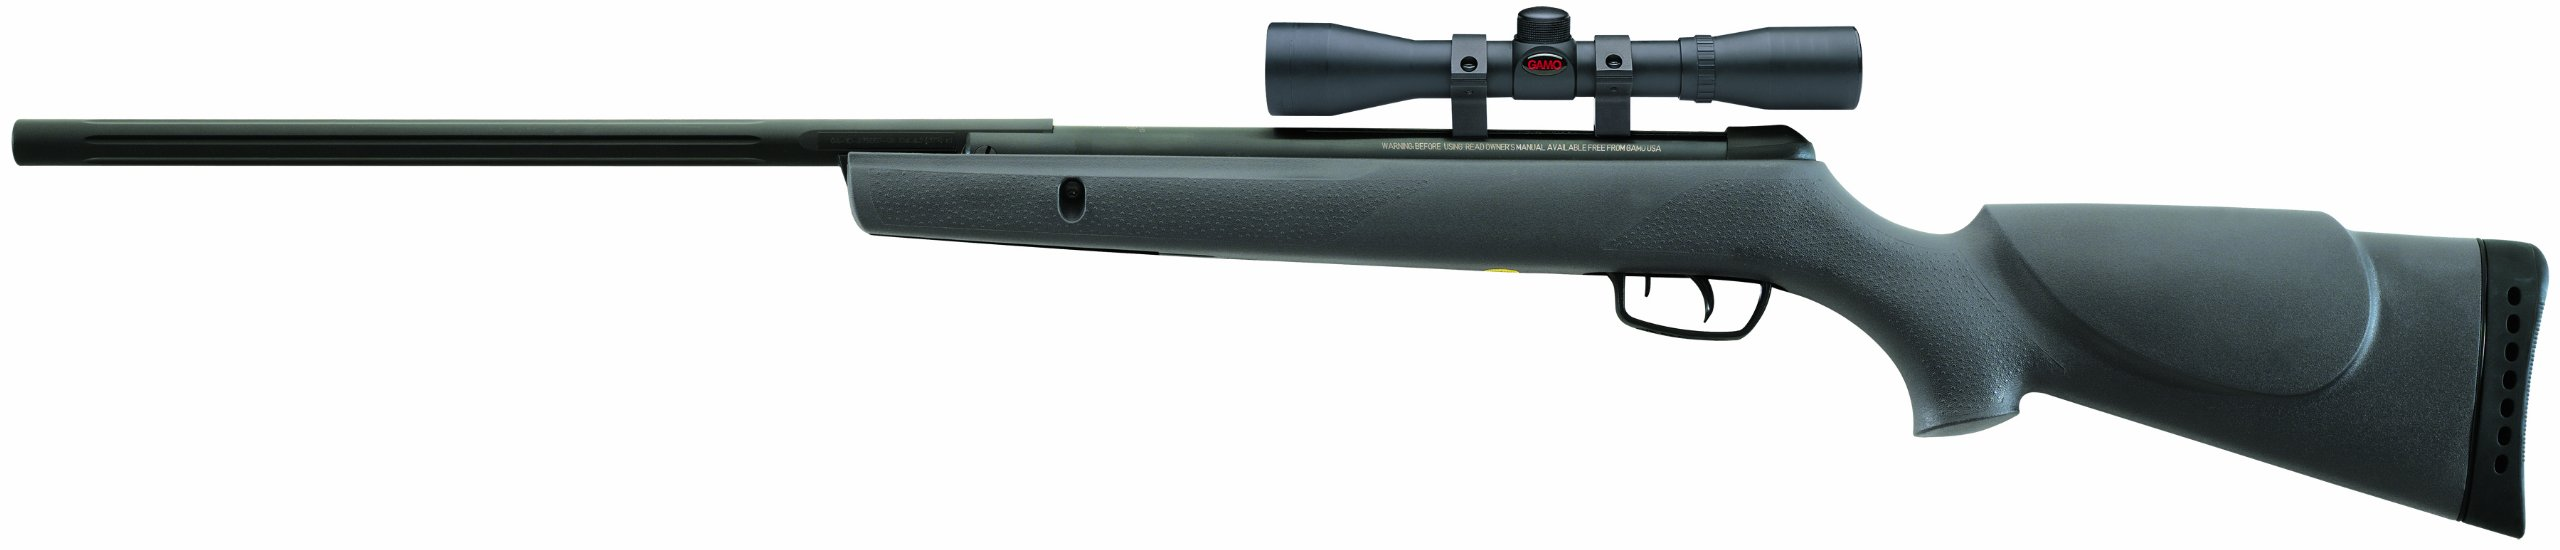 Gamo Hornet Air Rifle Review